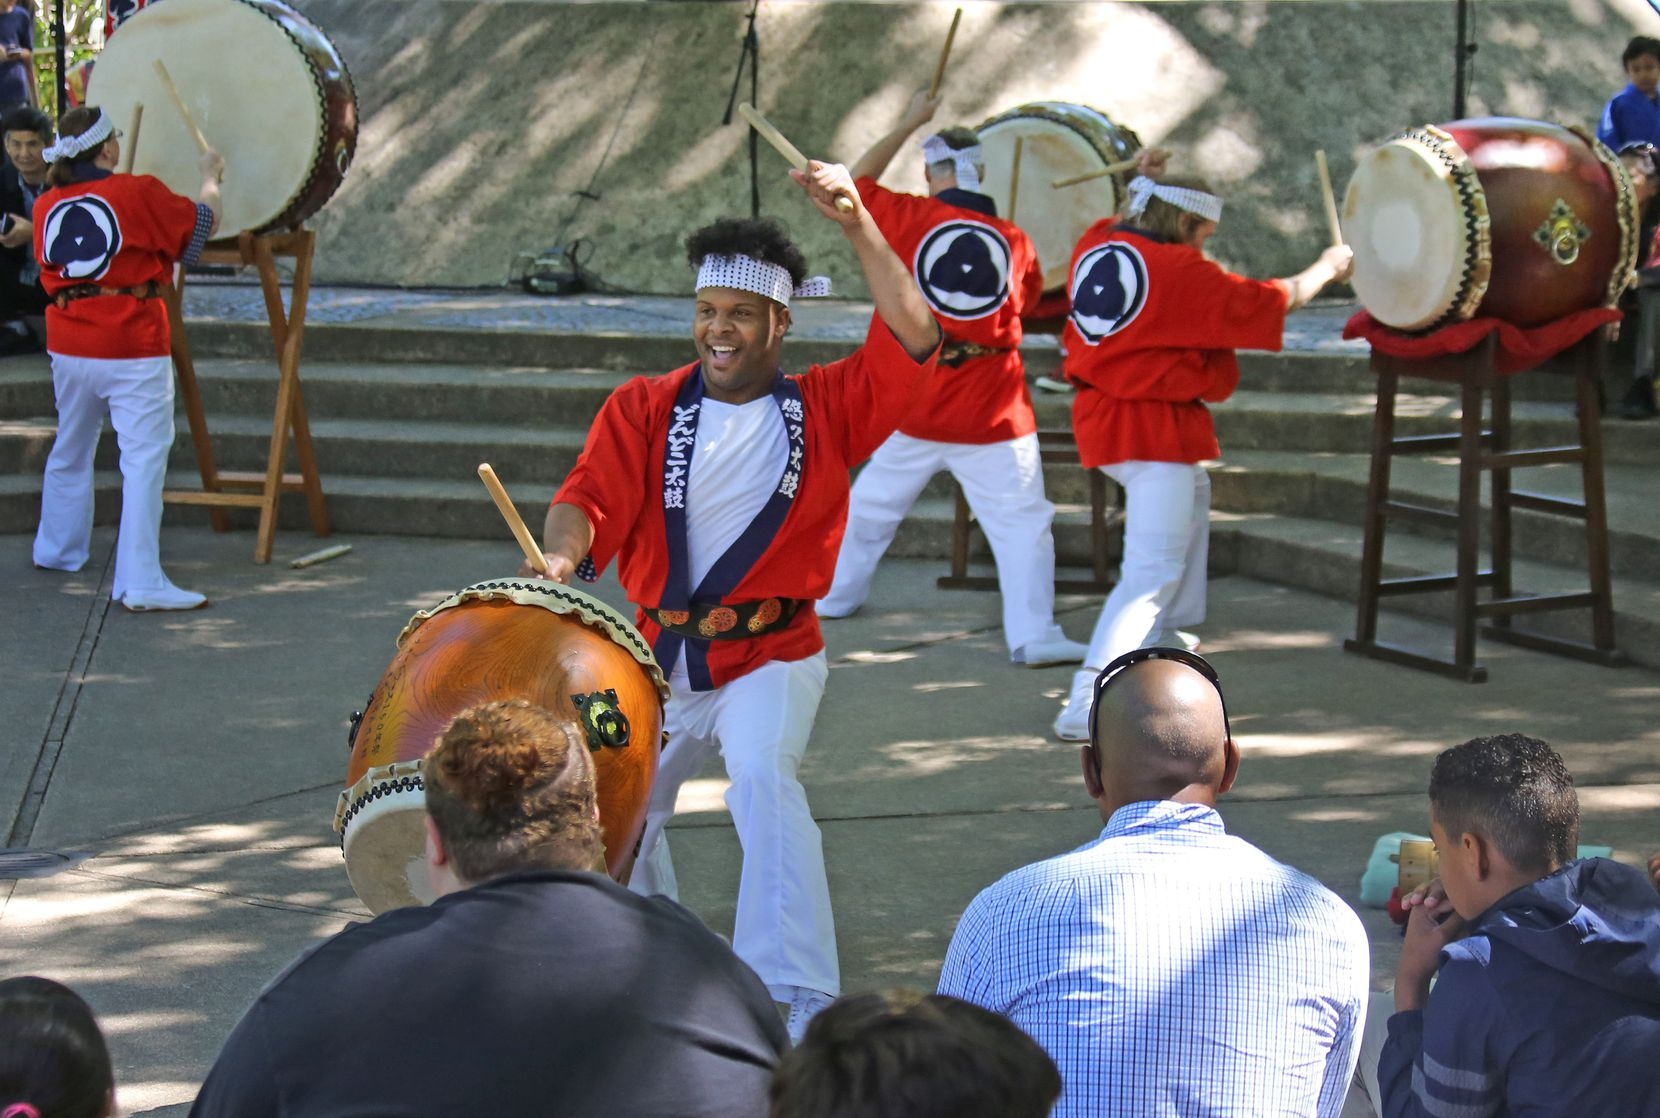 The Fort Worth Botanic Garden celebrates Asian culture at its Japanese Garden festivals held each spring and fall.